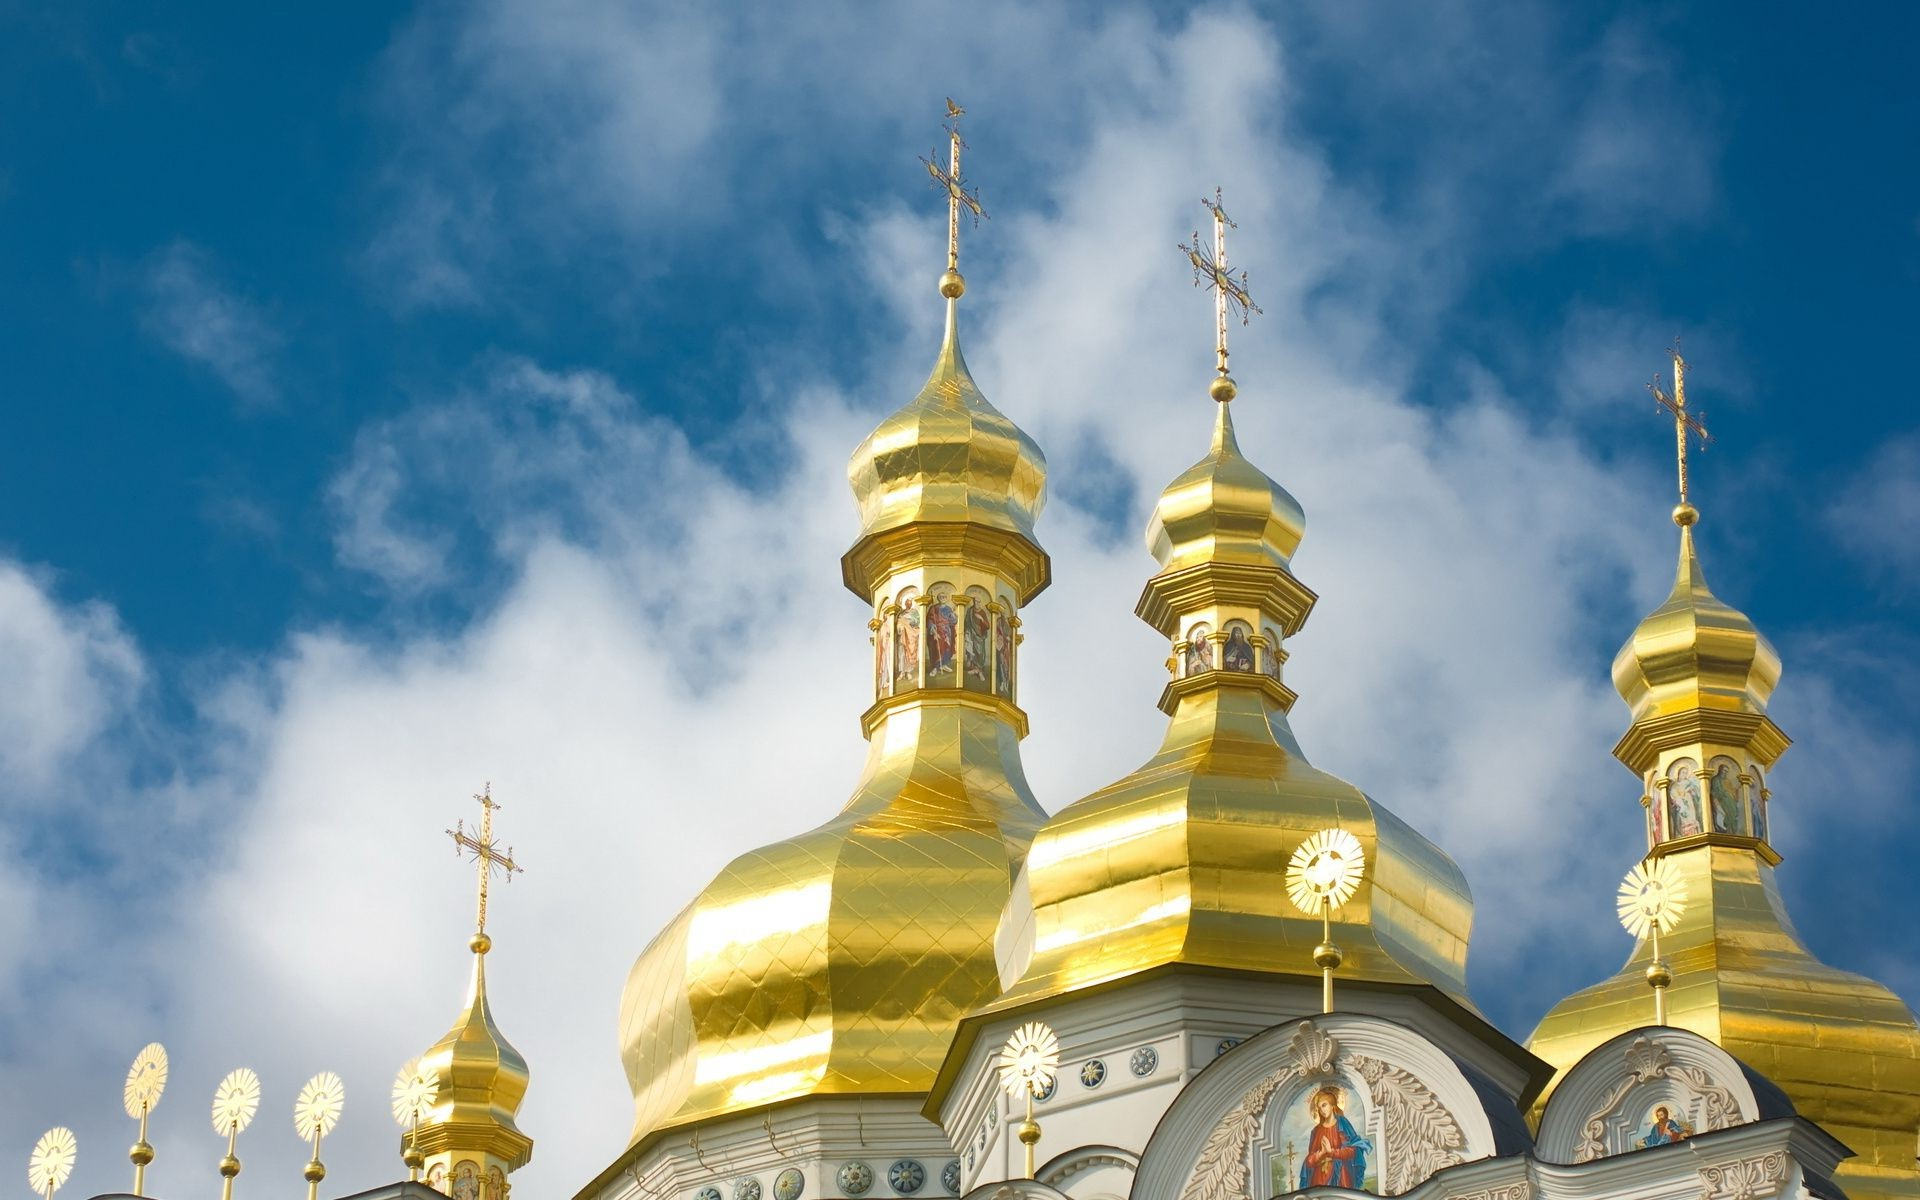 ancient architecture gold religion temple architecture orthodox traditional cross sacred spirituality monastery religious sky church dome travel ancient culture worship landmark old